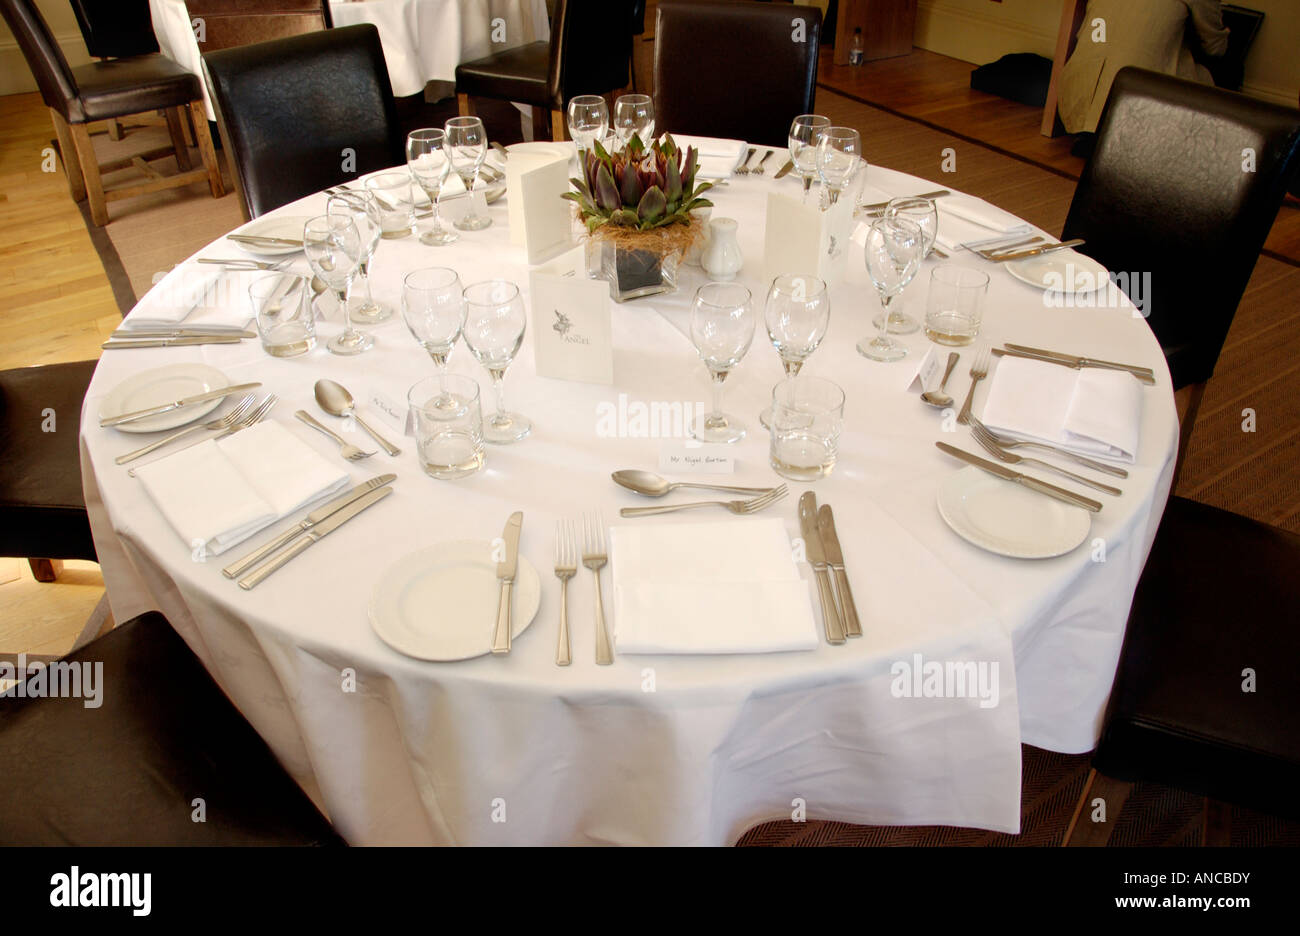 Formal table setting for lunch in Angel Hotel during Abergavenny Food Festival Monmouthshire South Wales UK : formal table setting pictures - pezcame.com